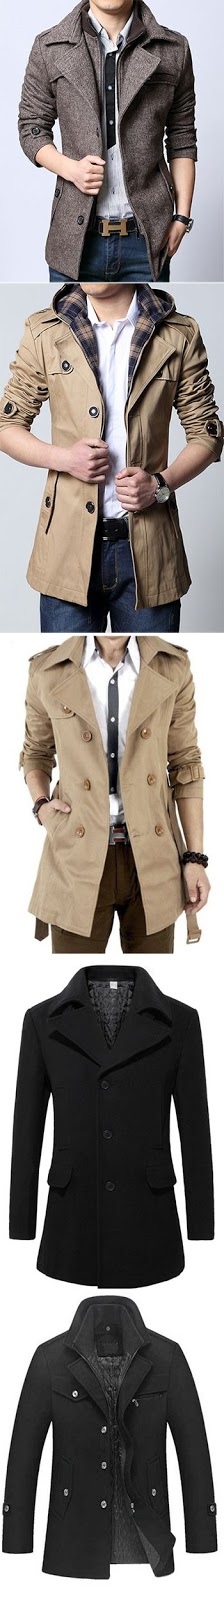 Men's Coats and Jackets.Fashion Picked for you